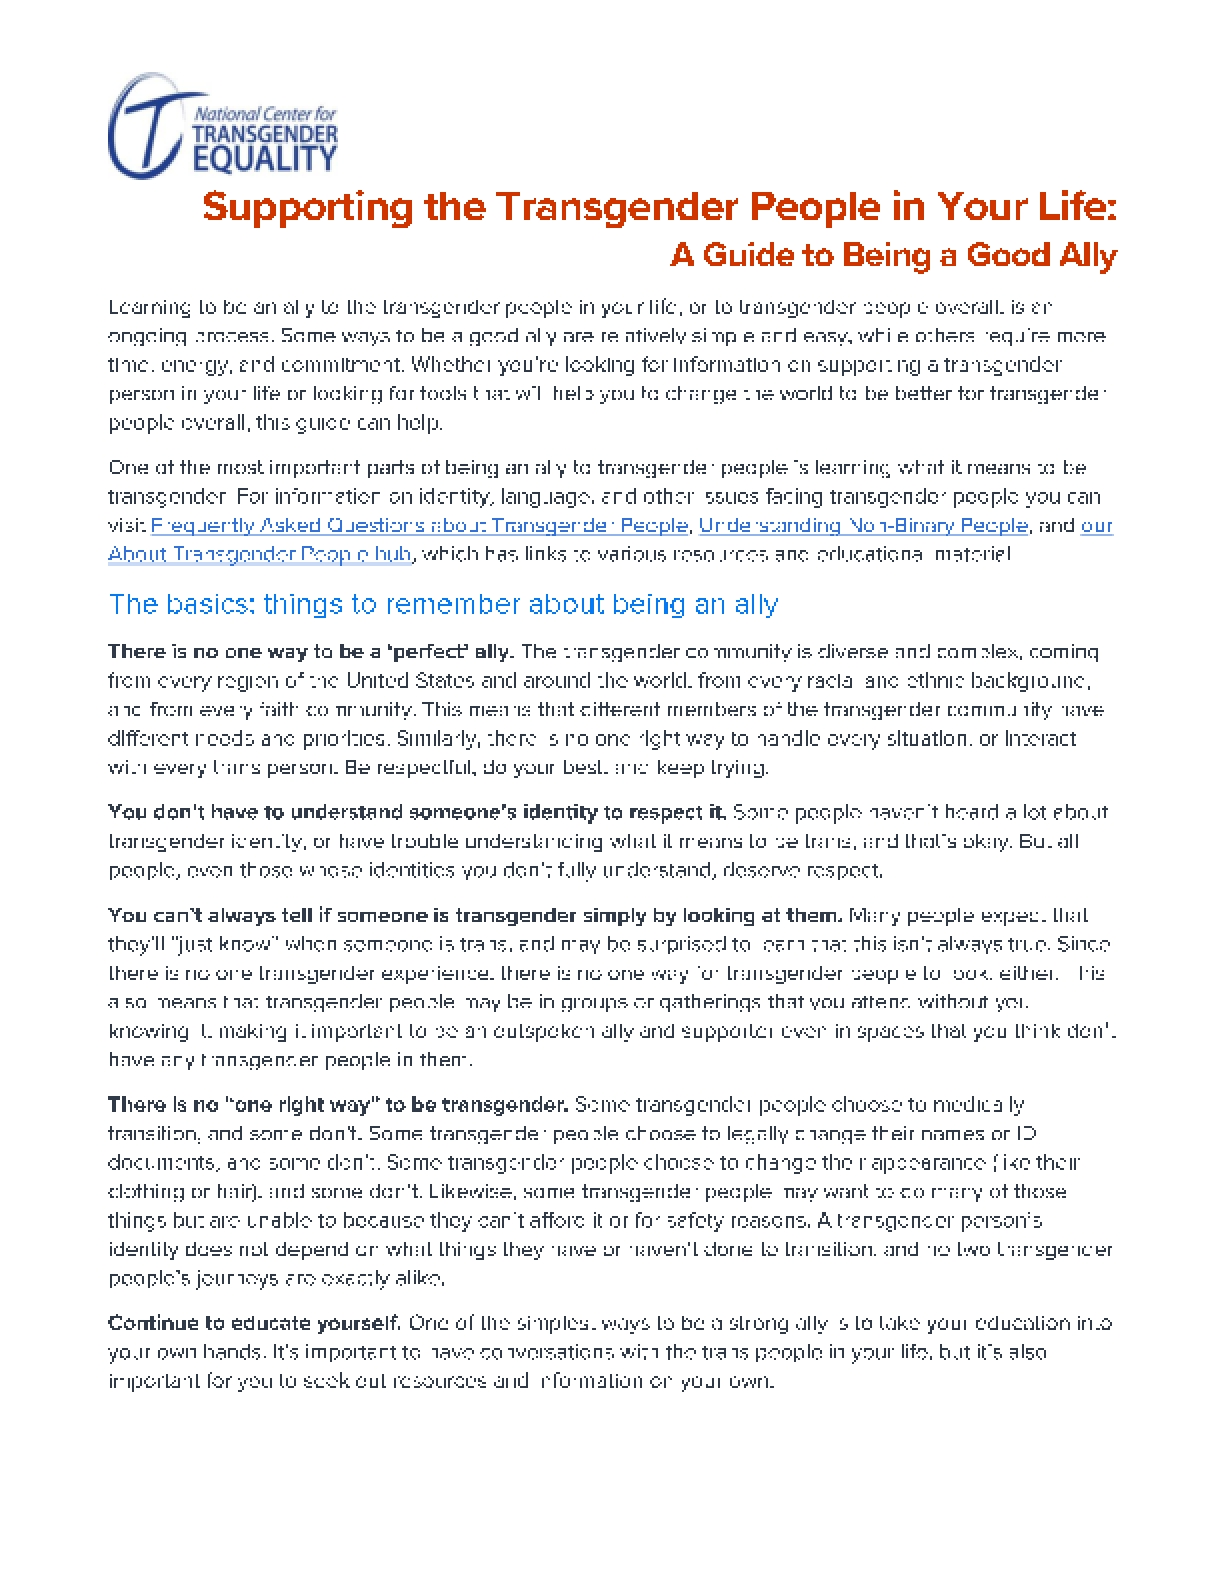 Supporting the Transgender People in Your Life: A Guide to Being a Good Ally